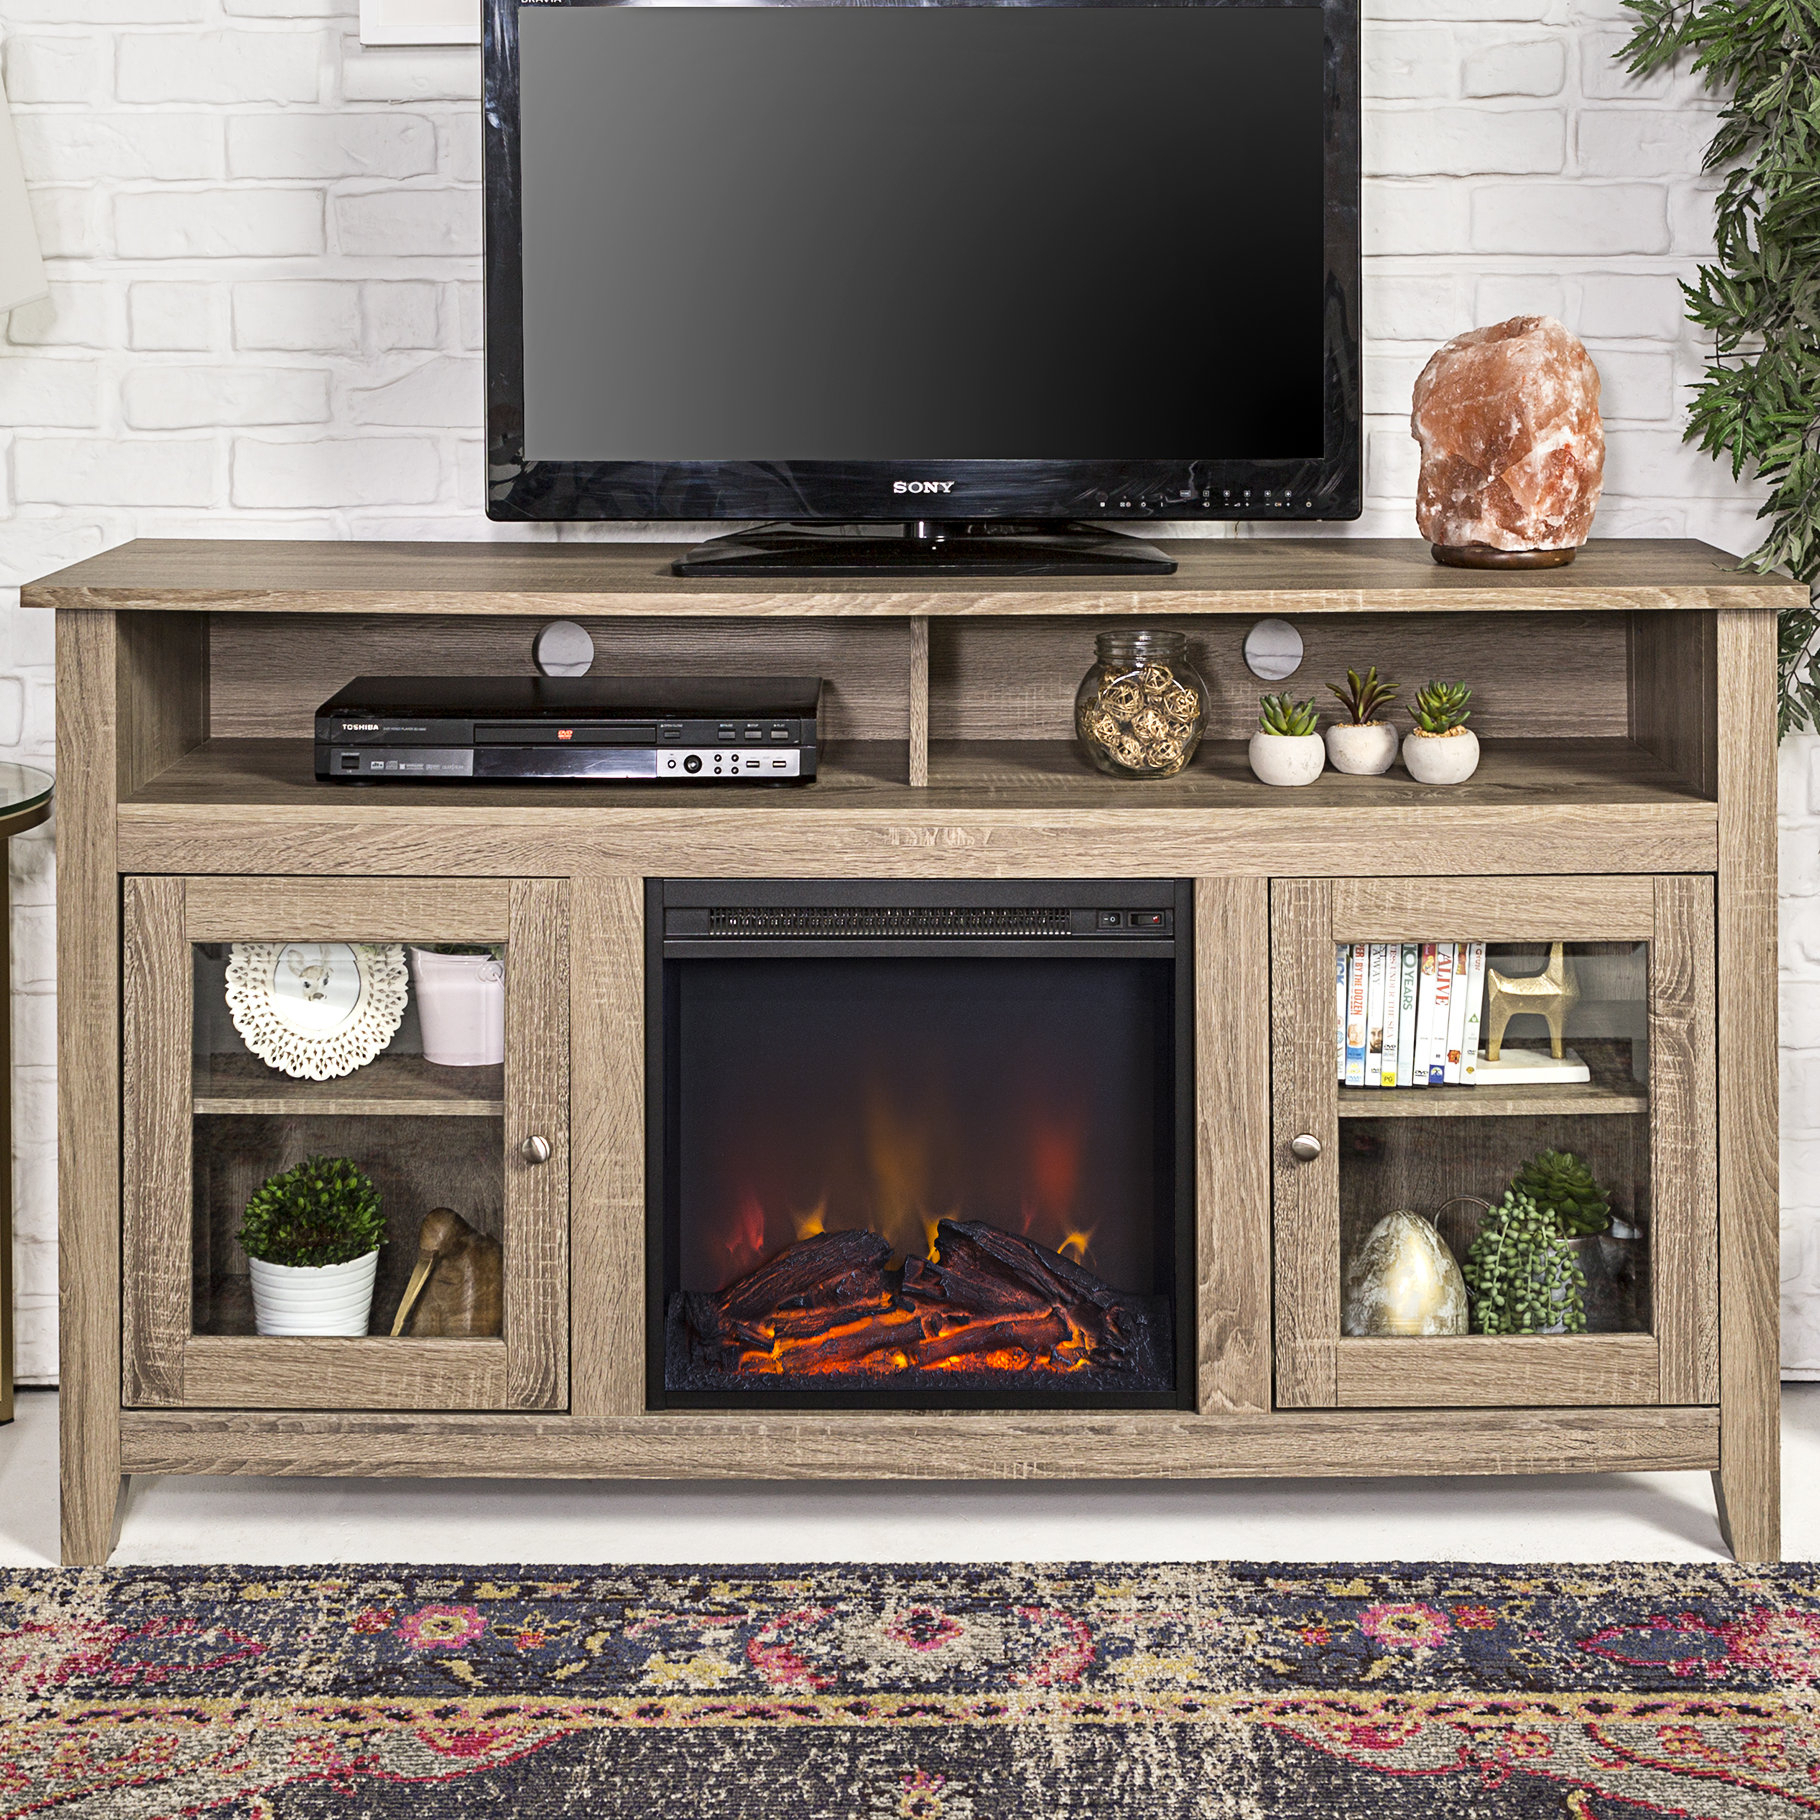 Fireplace Tv Stands & Entertainment Centers You'll Love | Wayfair (View 20 of 30)